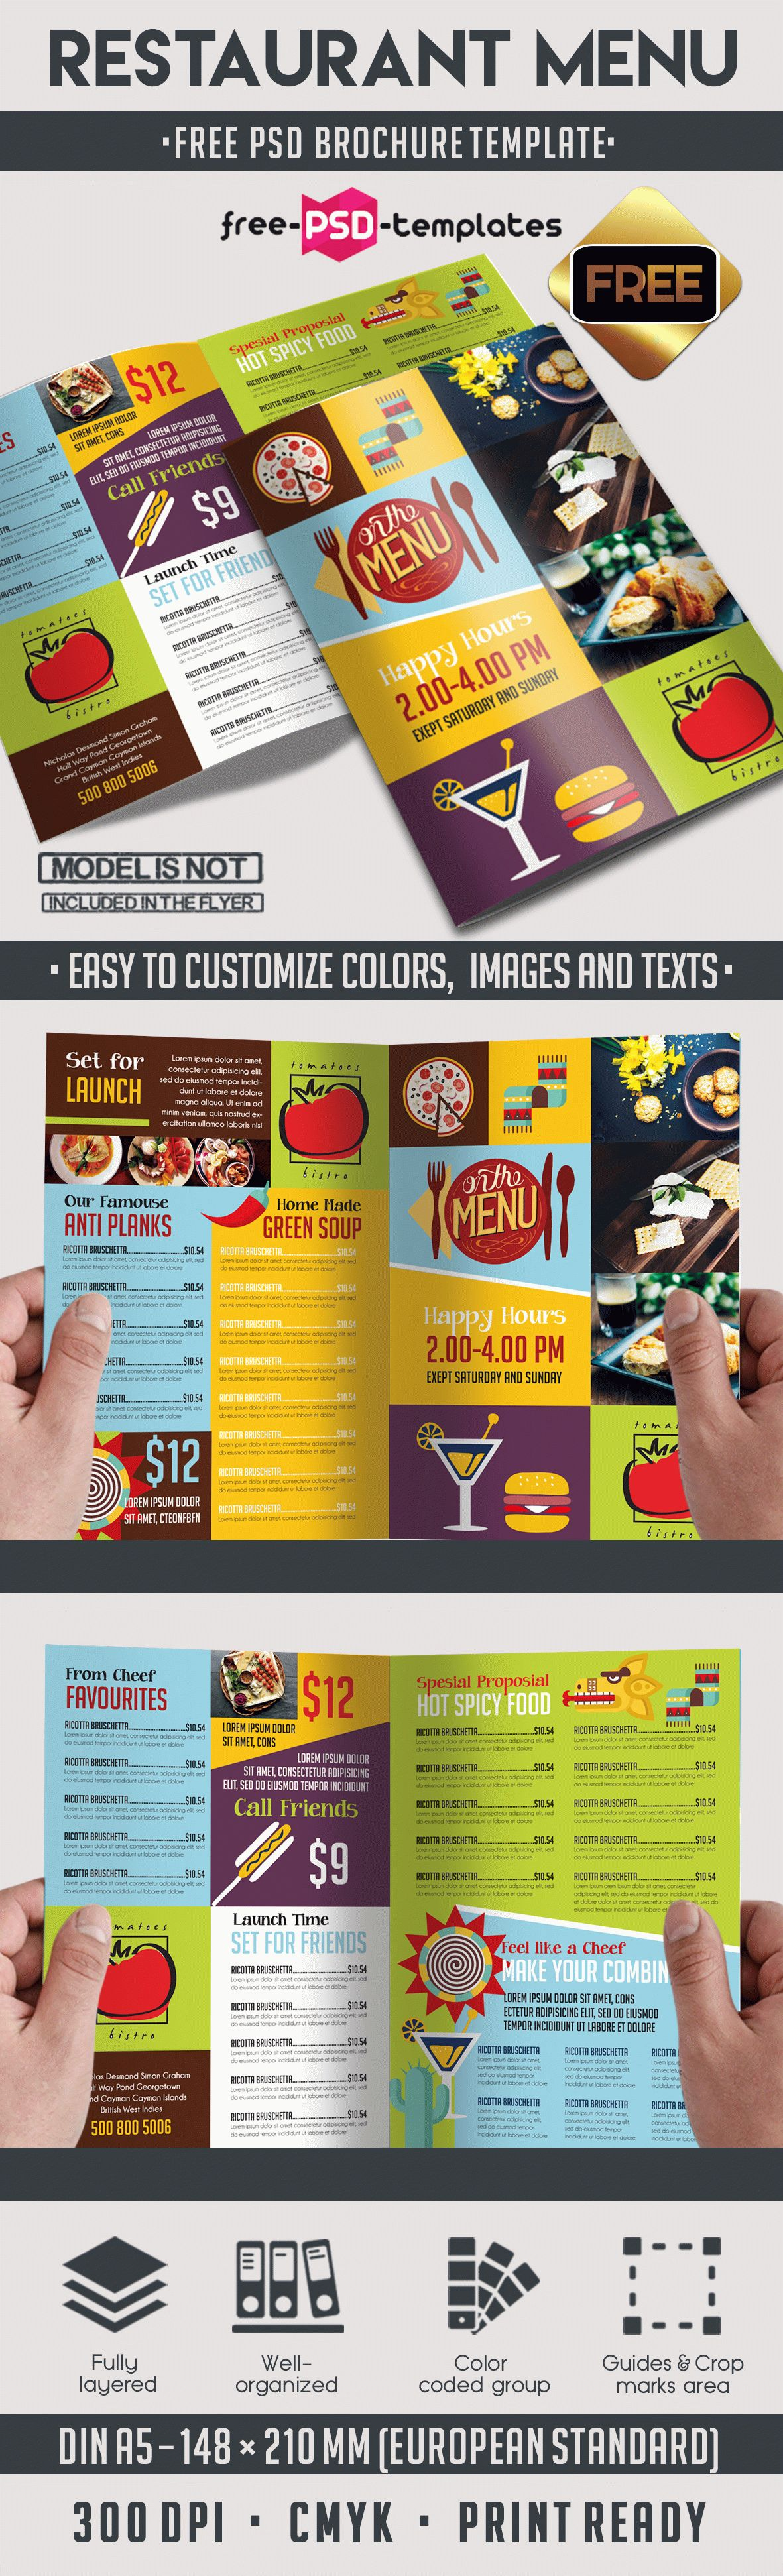 Menu free psd bi fold psd brochure template free psd for 2 fold brochure template psd